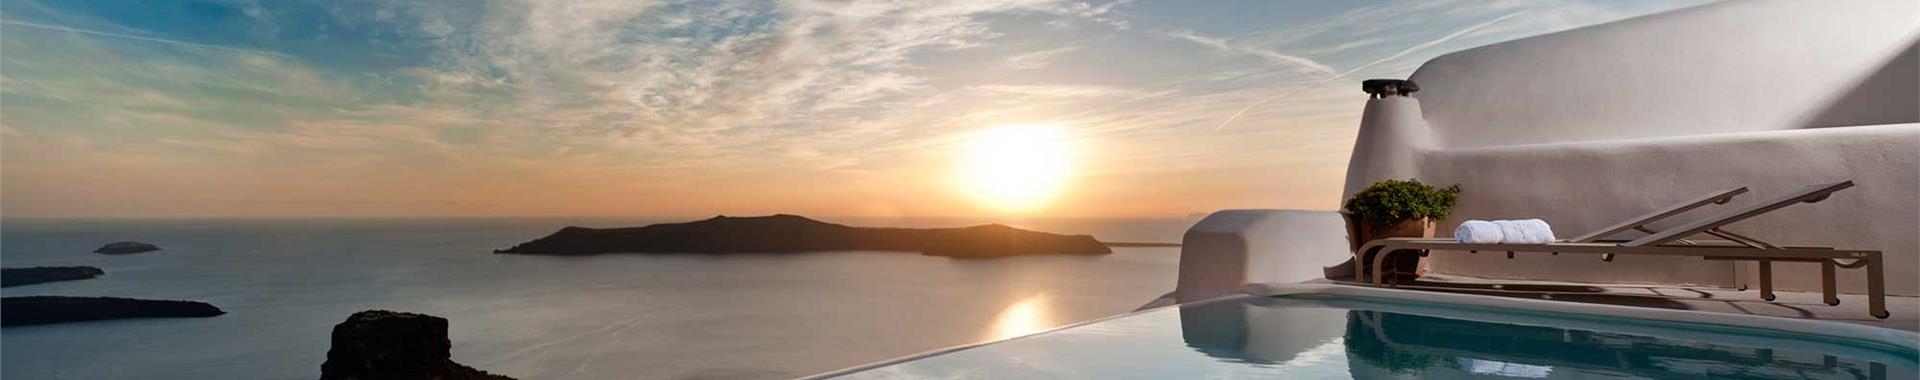 Fira or Imerovigli Santorini Honeymoon Hotels